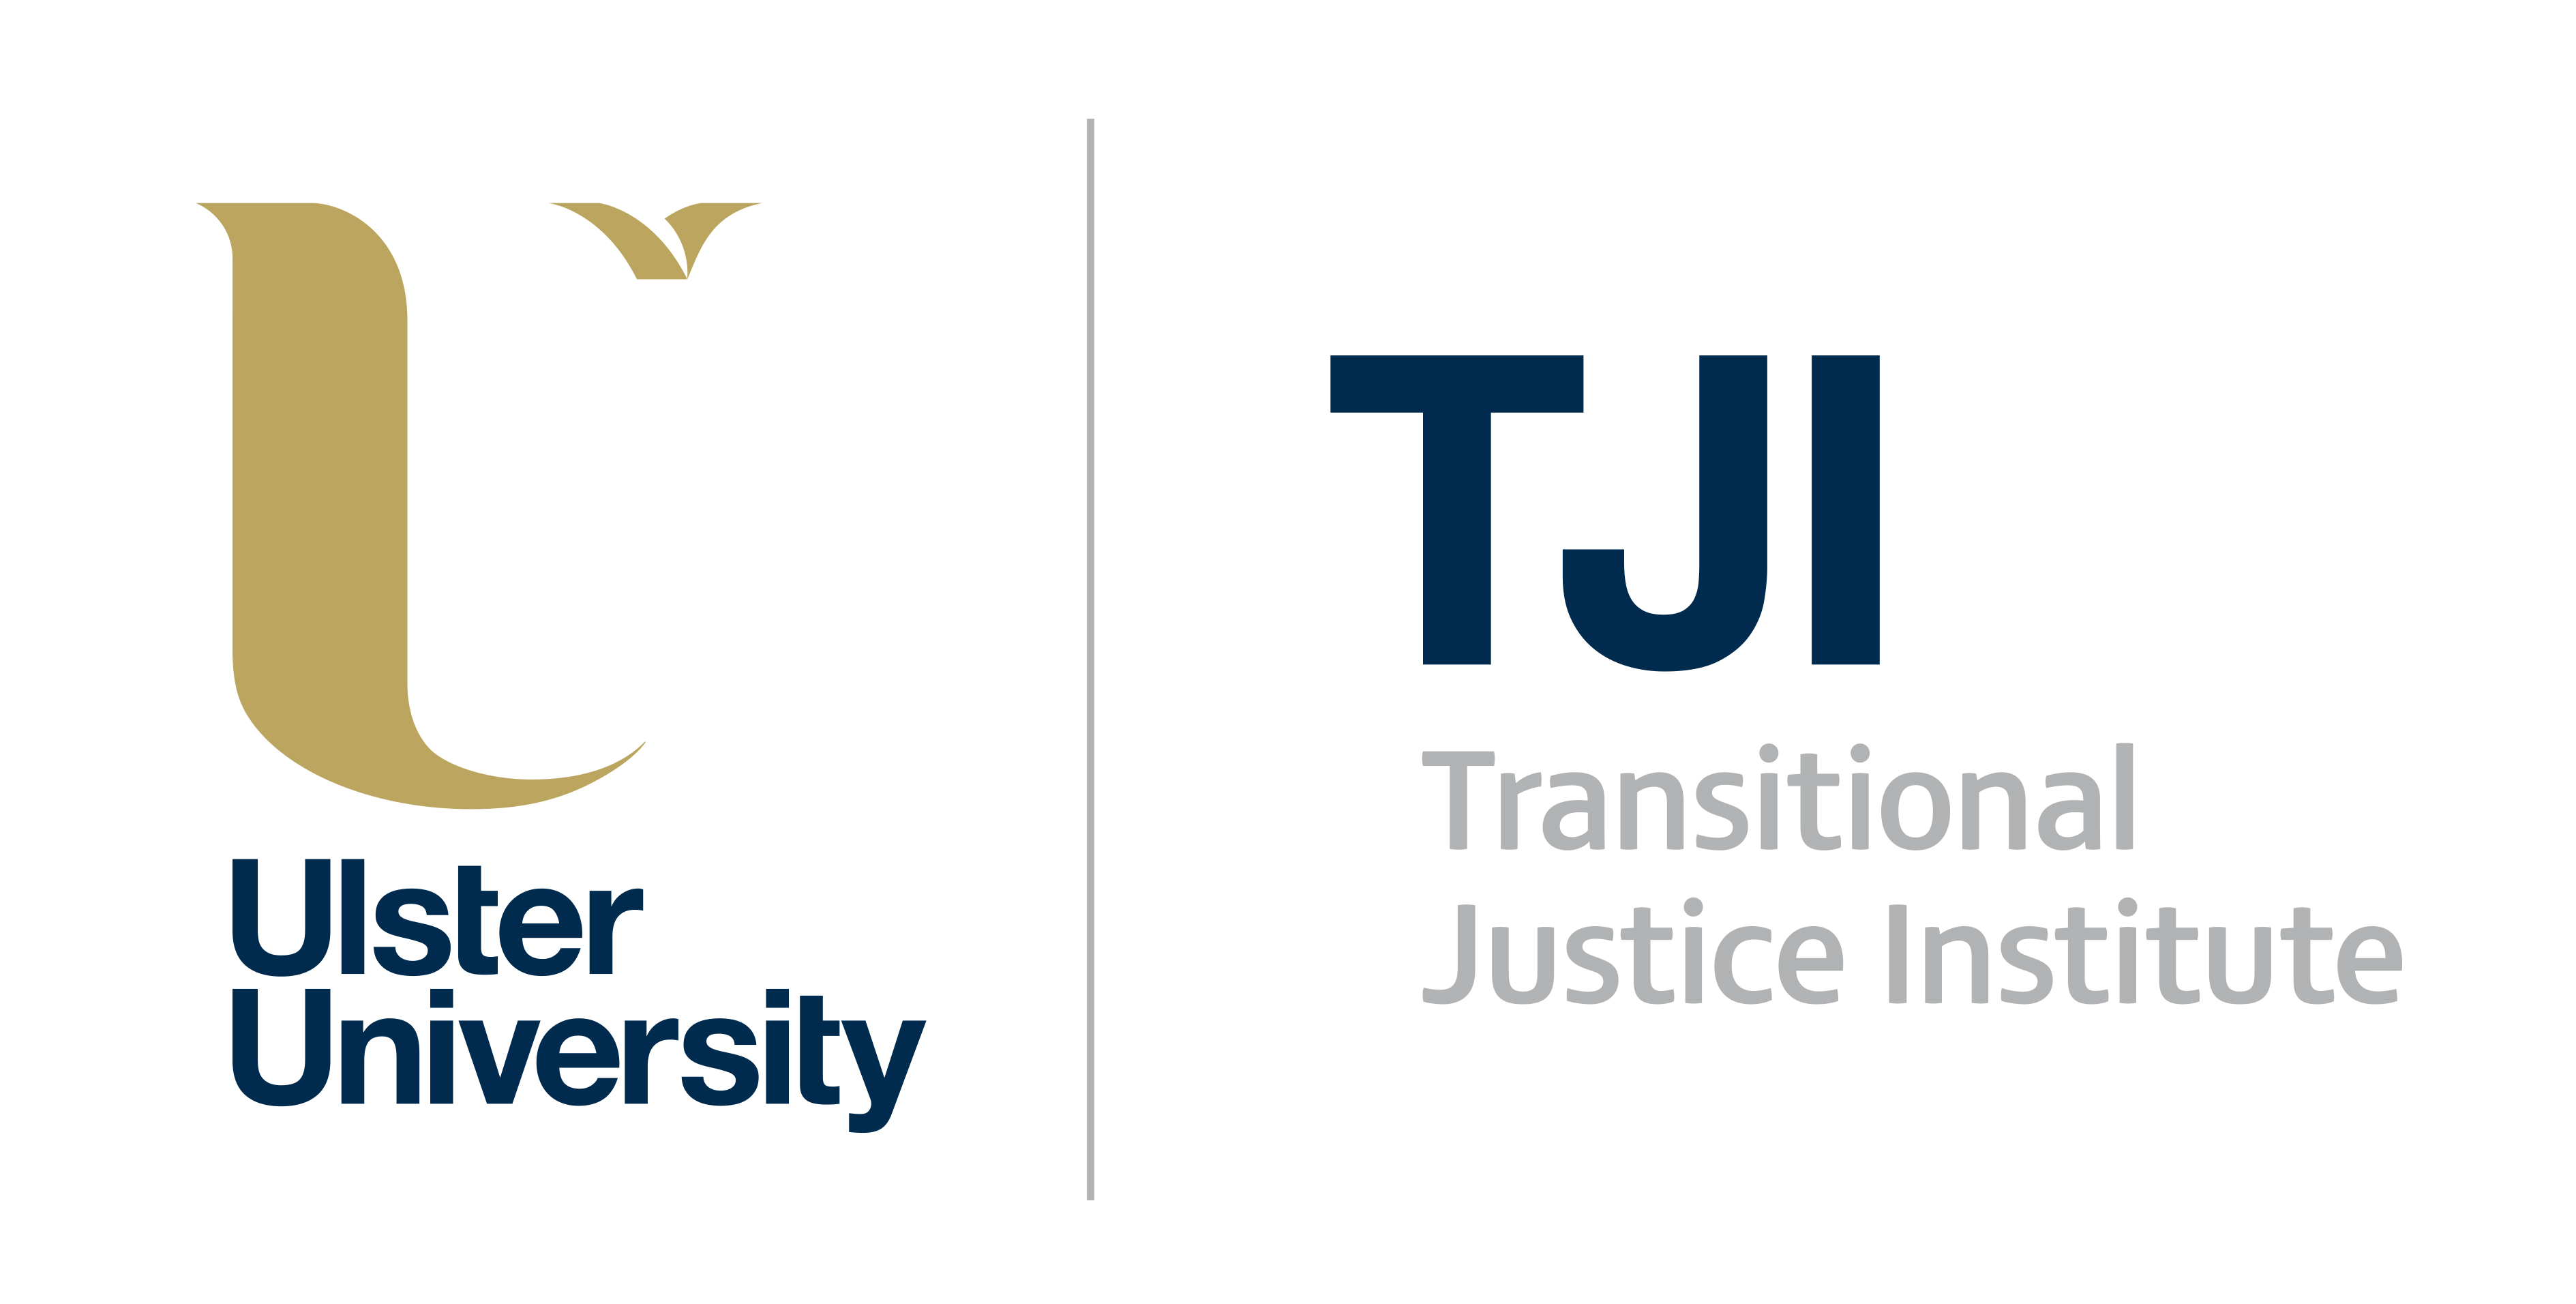 University of Ulster Transitional Justice Institute